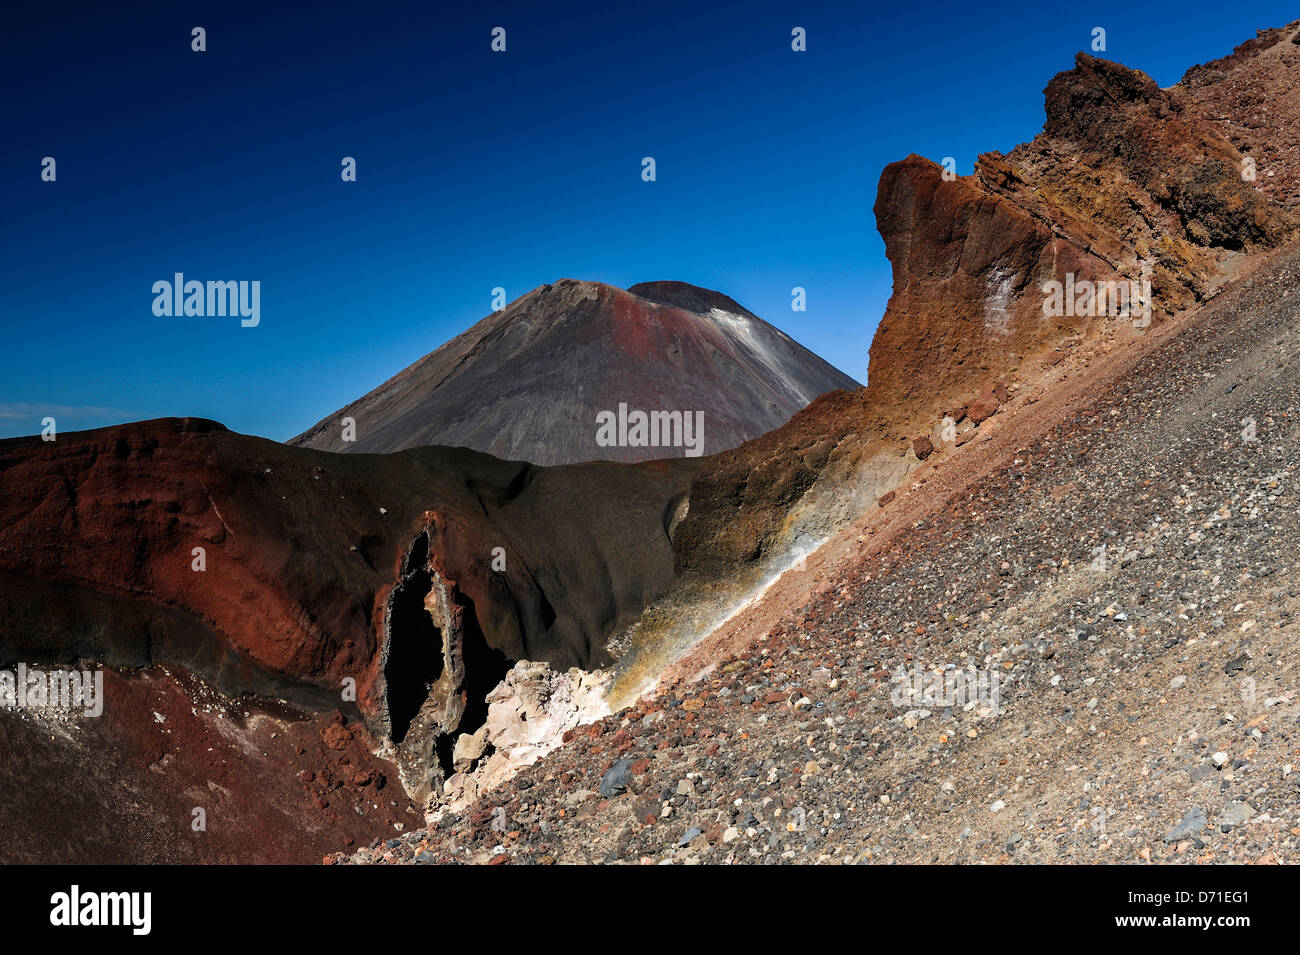 Red Crater (foreground) on Mount Tongariro, in front of Mount Ngauruhoe, aka Mount Doom from Lord of the Rings, - Stock Image